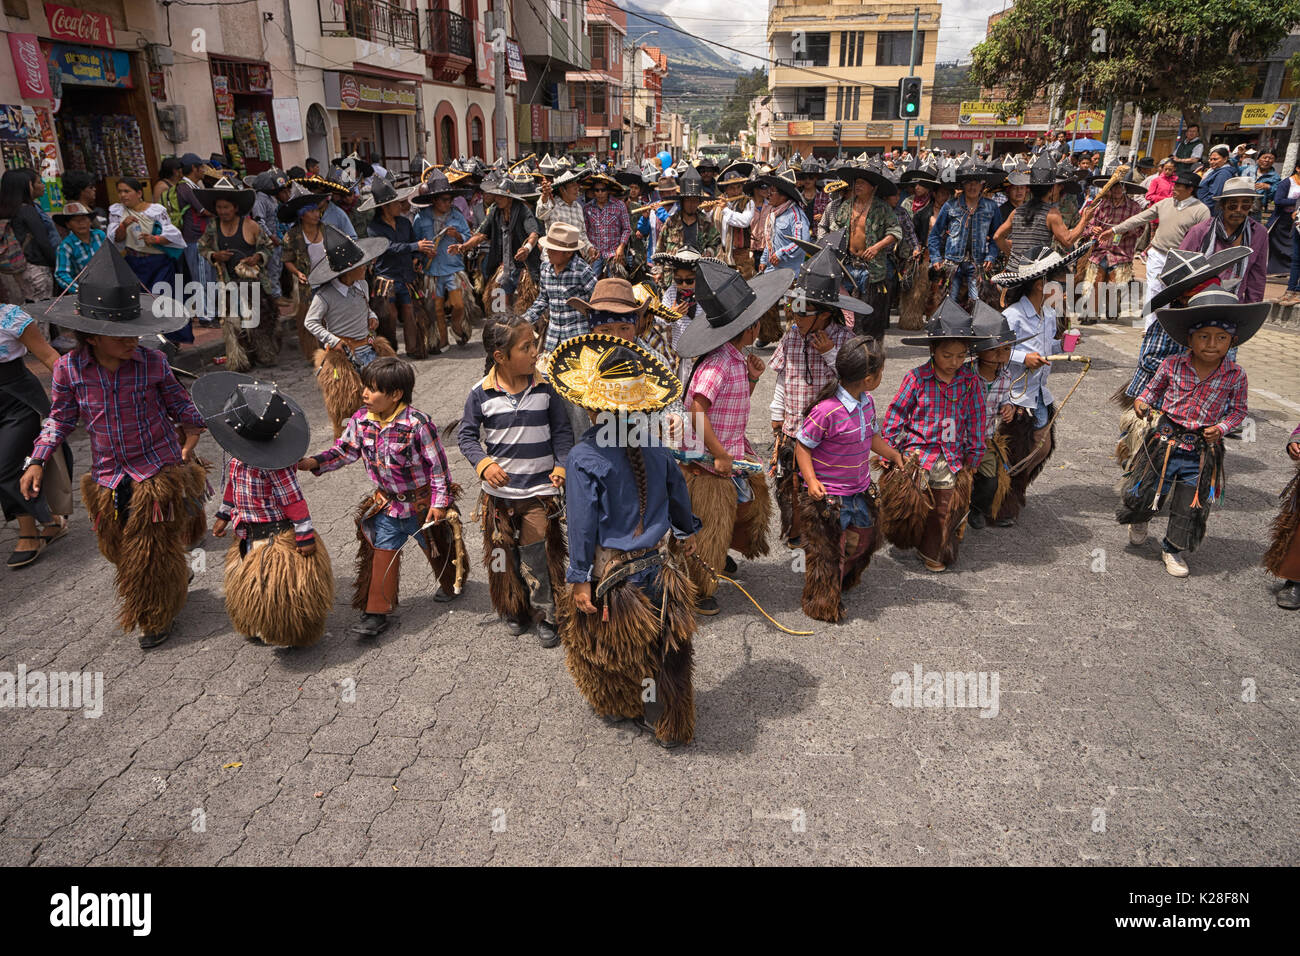 June 25, 2017 Cotacachi, Ecuador: children wearing sombreros and chaps at the the Inti Raymi celebrations - Stock Image